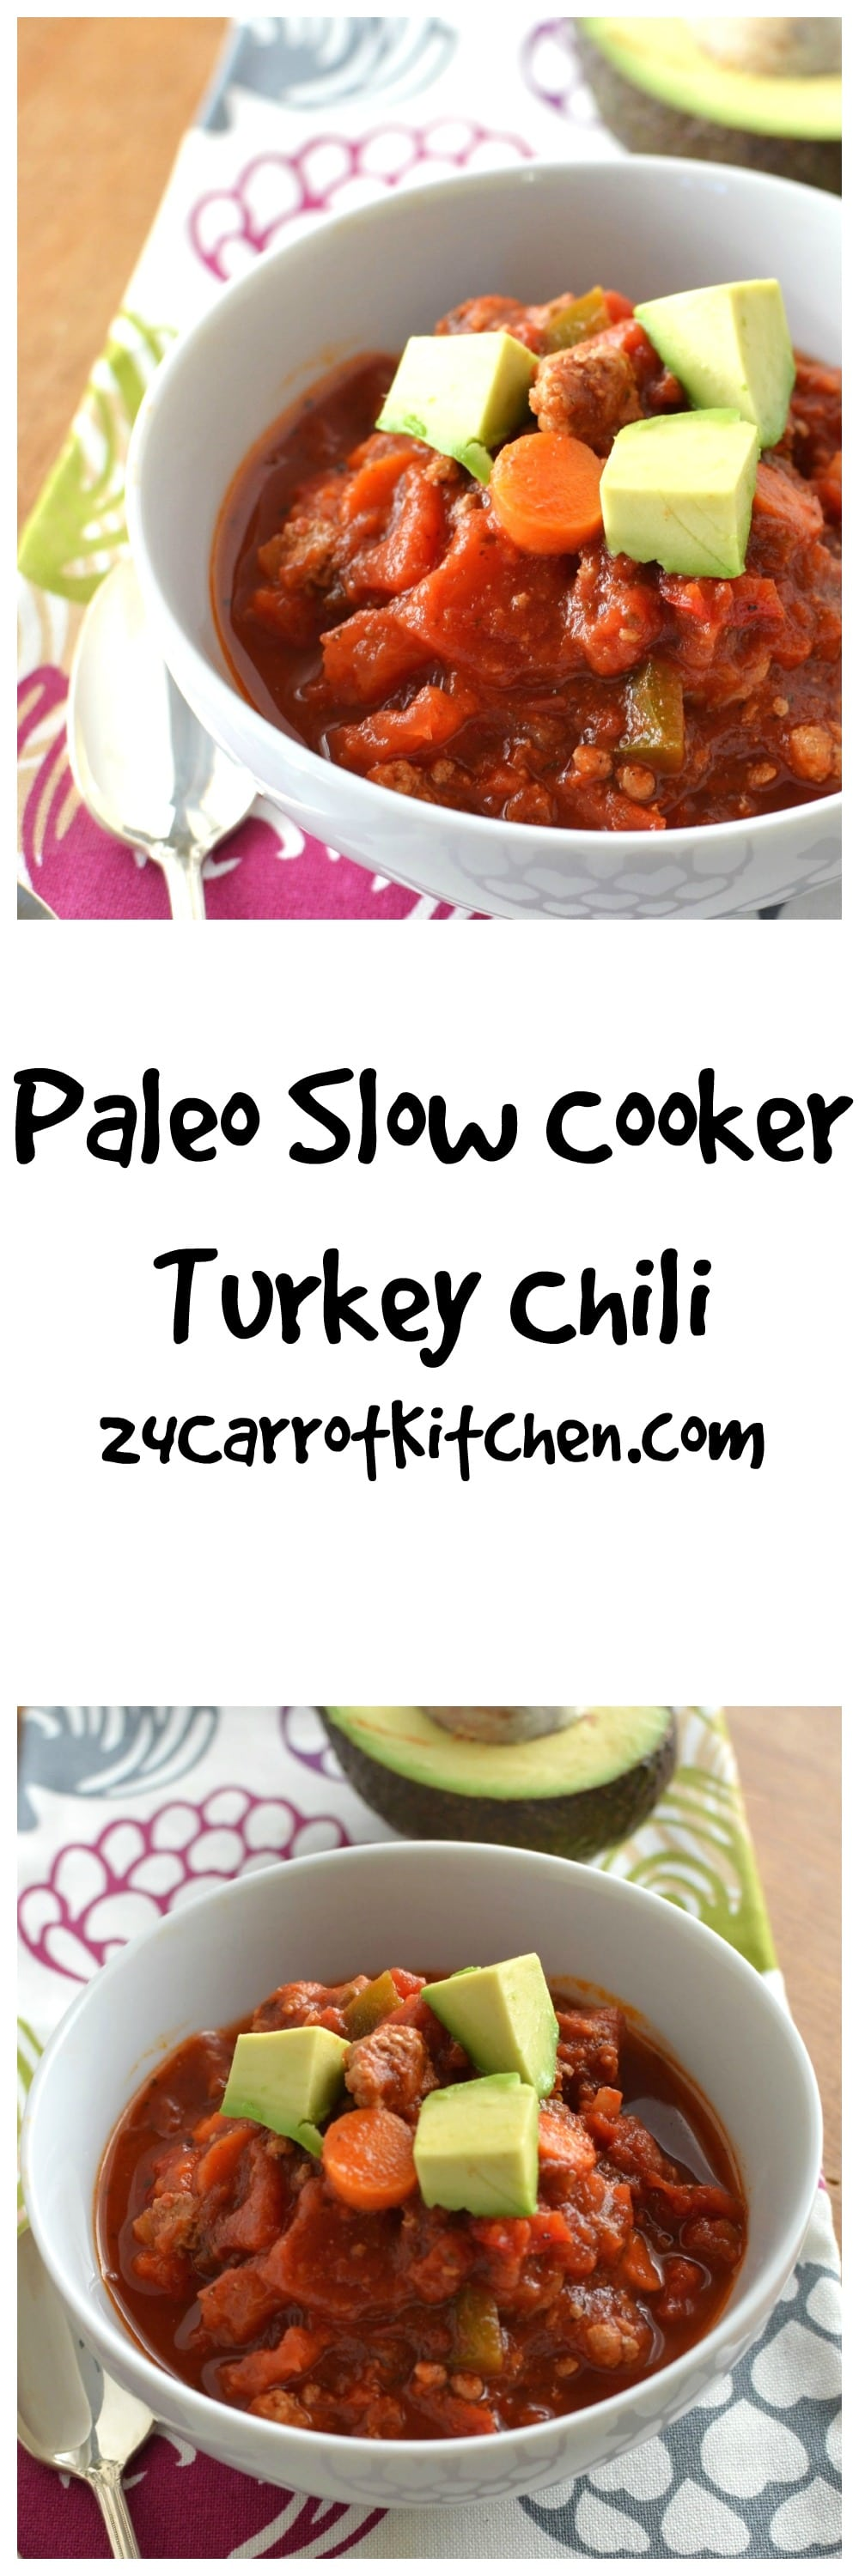 The BEST Crockpot Paleo Chili - Easy and Healthy! - 24 Carrot Kitchen